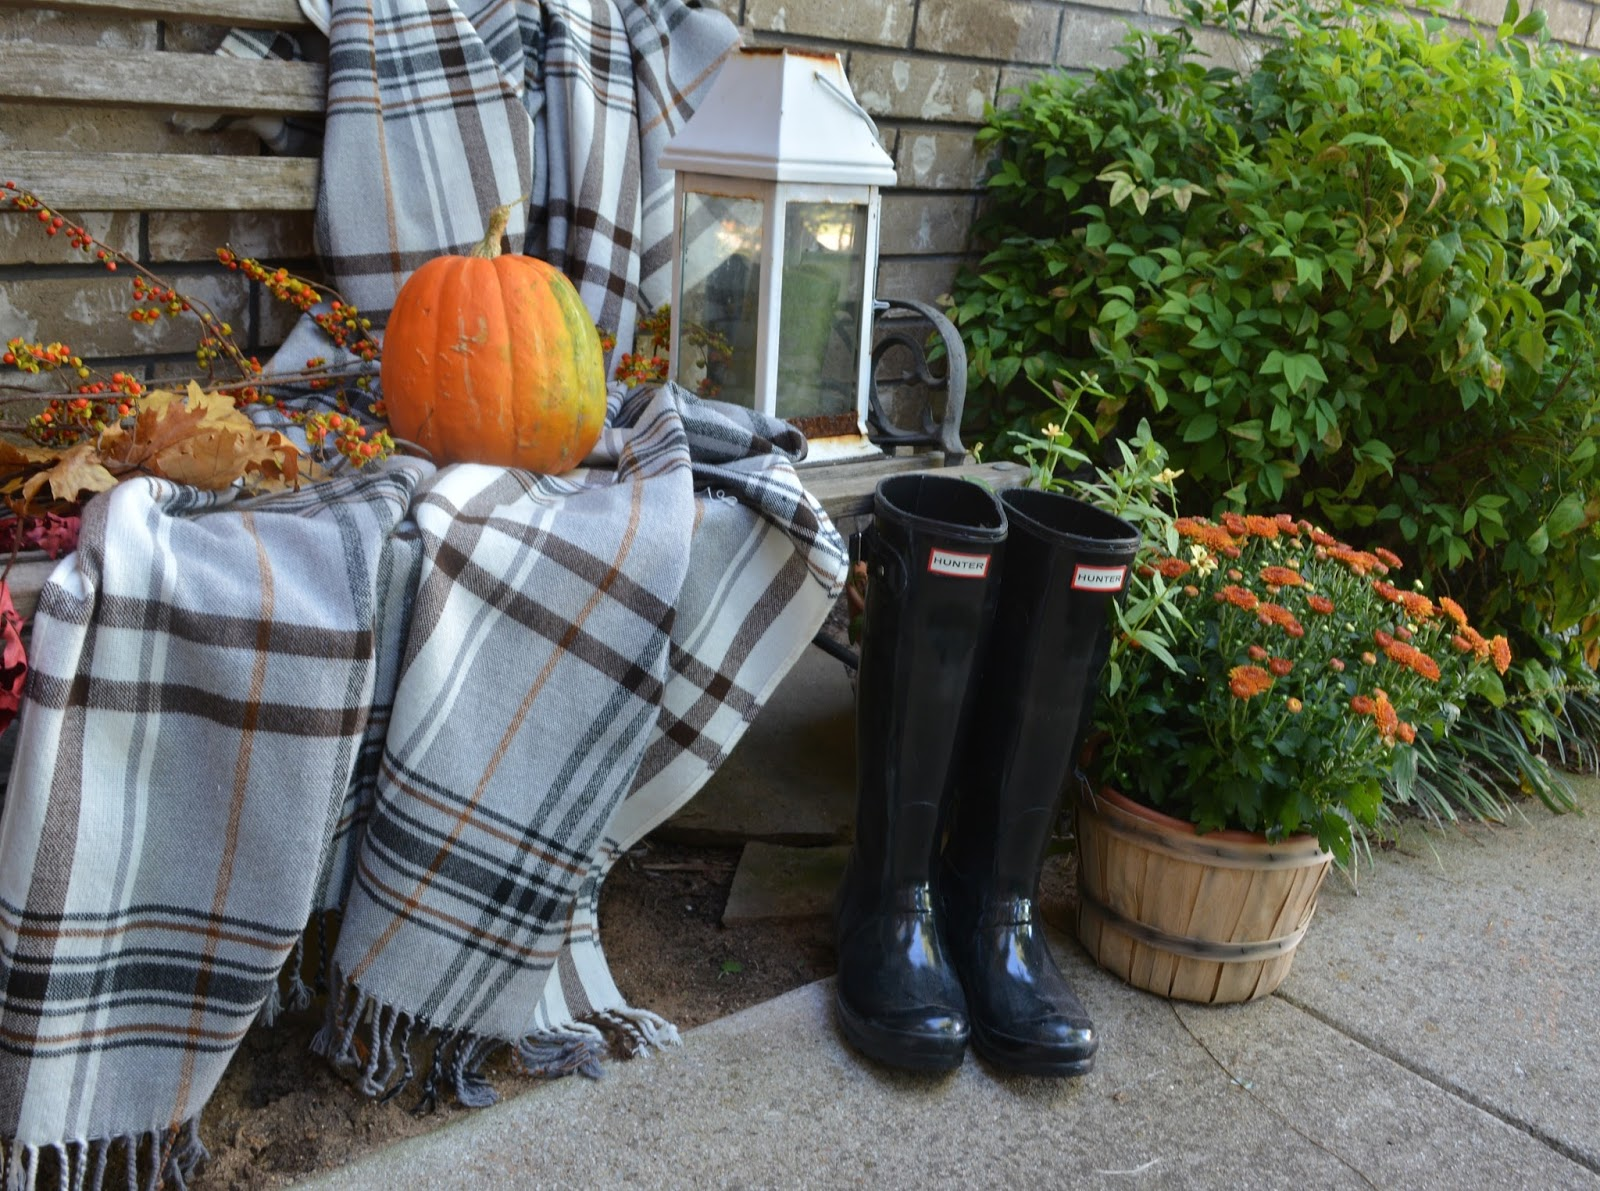 Hunter Rain Boots, Hermine Throw, Bittersweet, Mums, Lantern